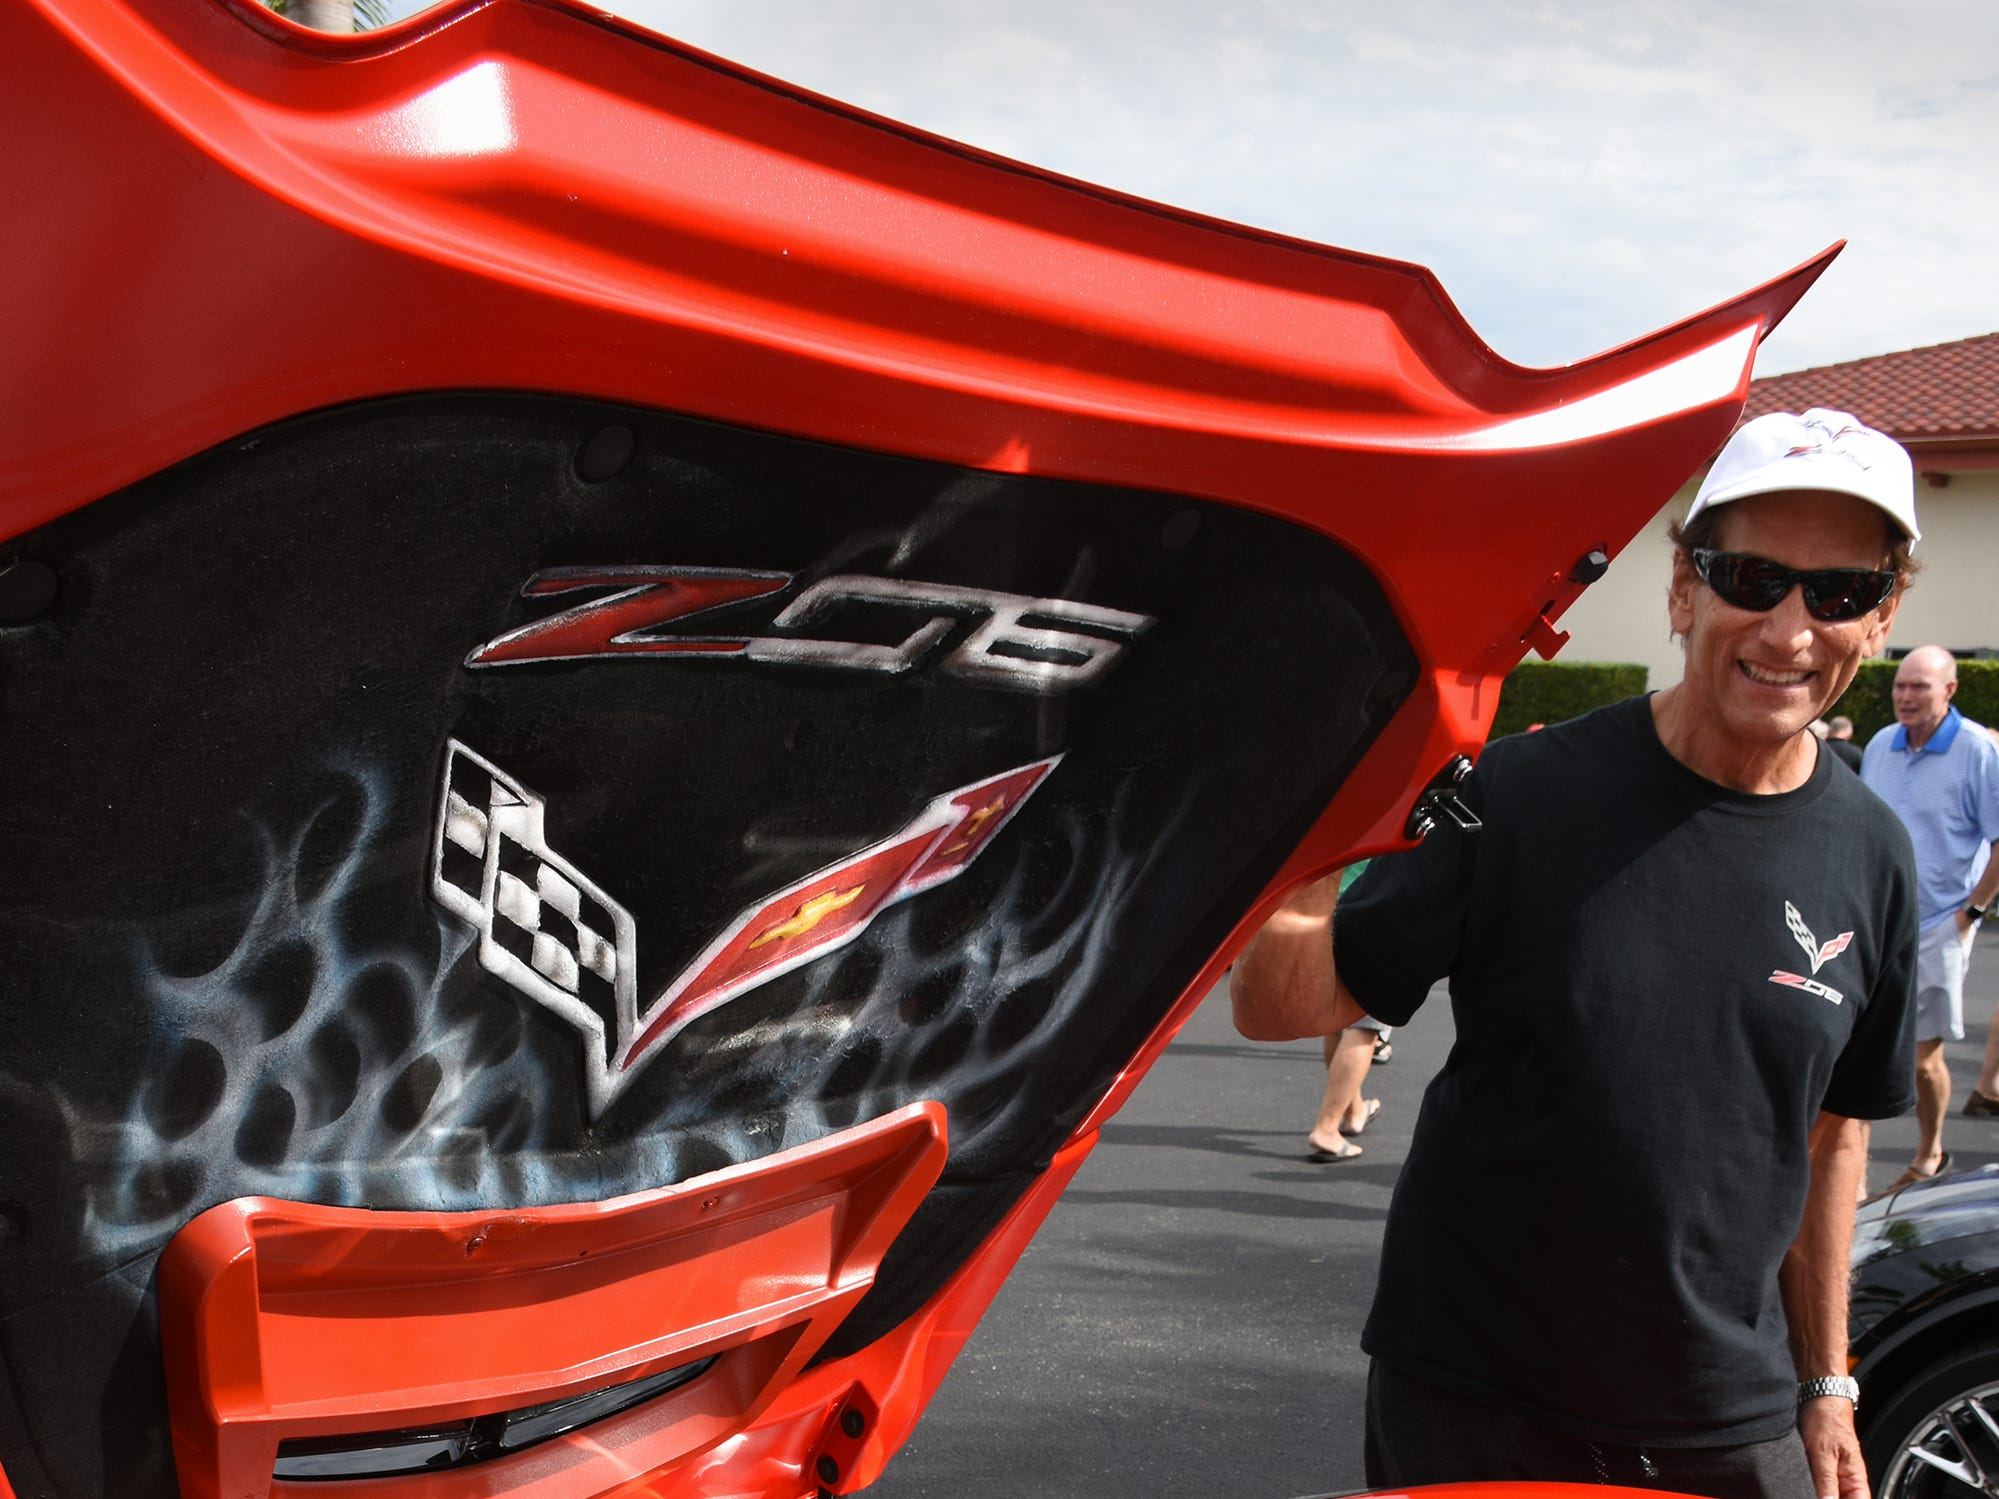 Tony Costantino of the Corvette Club shows off his 2016 Z 06. The Marco Island Knights of Columbus held their inaugural car show Saturday in the parking lot at San Marco Catholic Church.